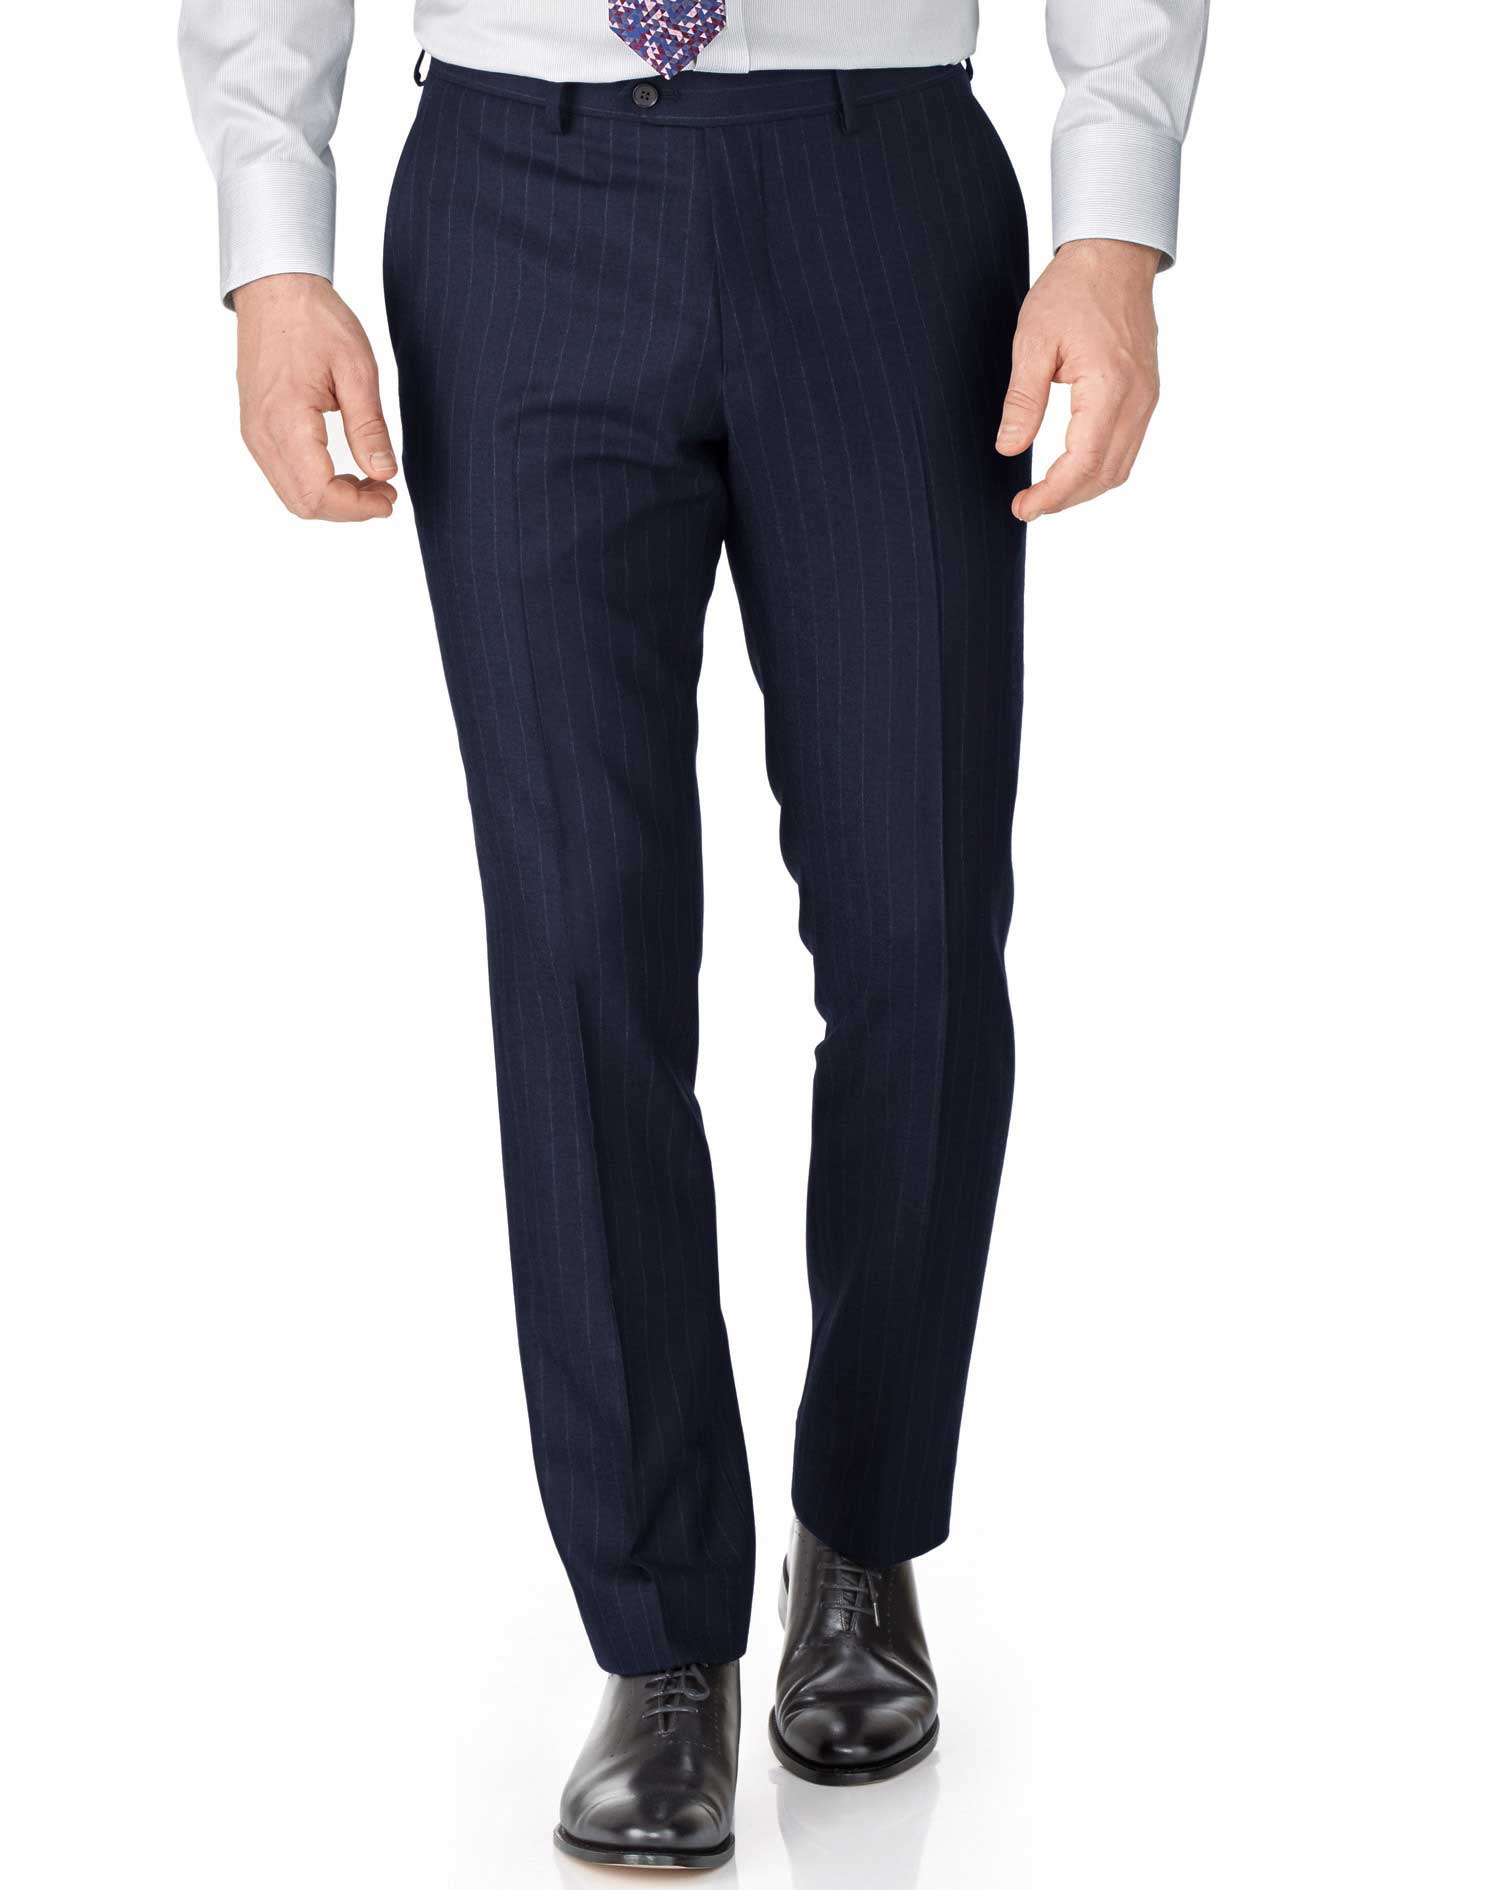 Navy Extra Slim Fit Twill Business Suit Trousers Size W32 L34 by Charles Tyrwhitt